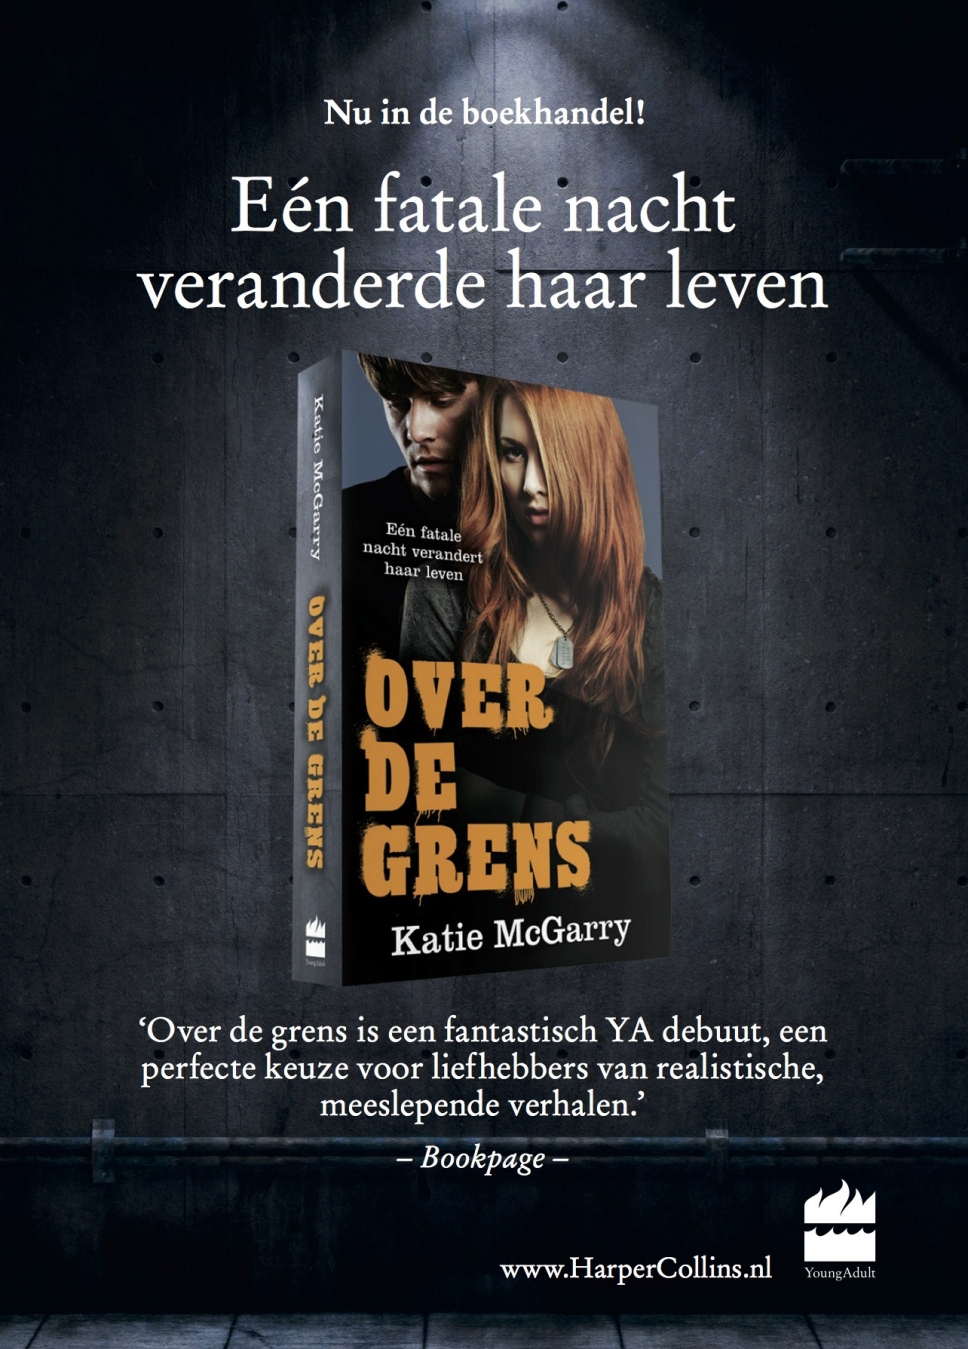 Over de grens (Harlequin)